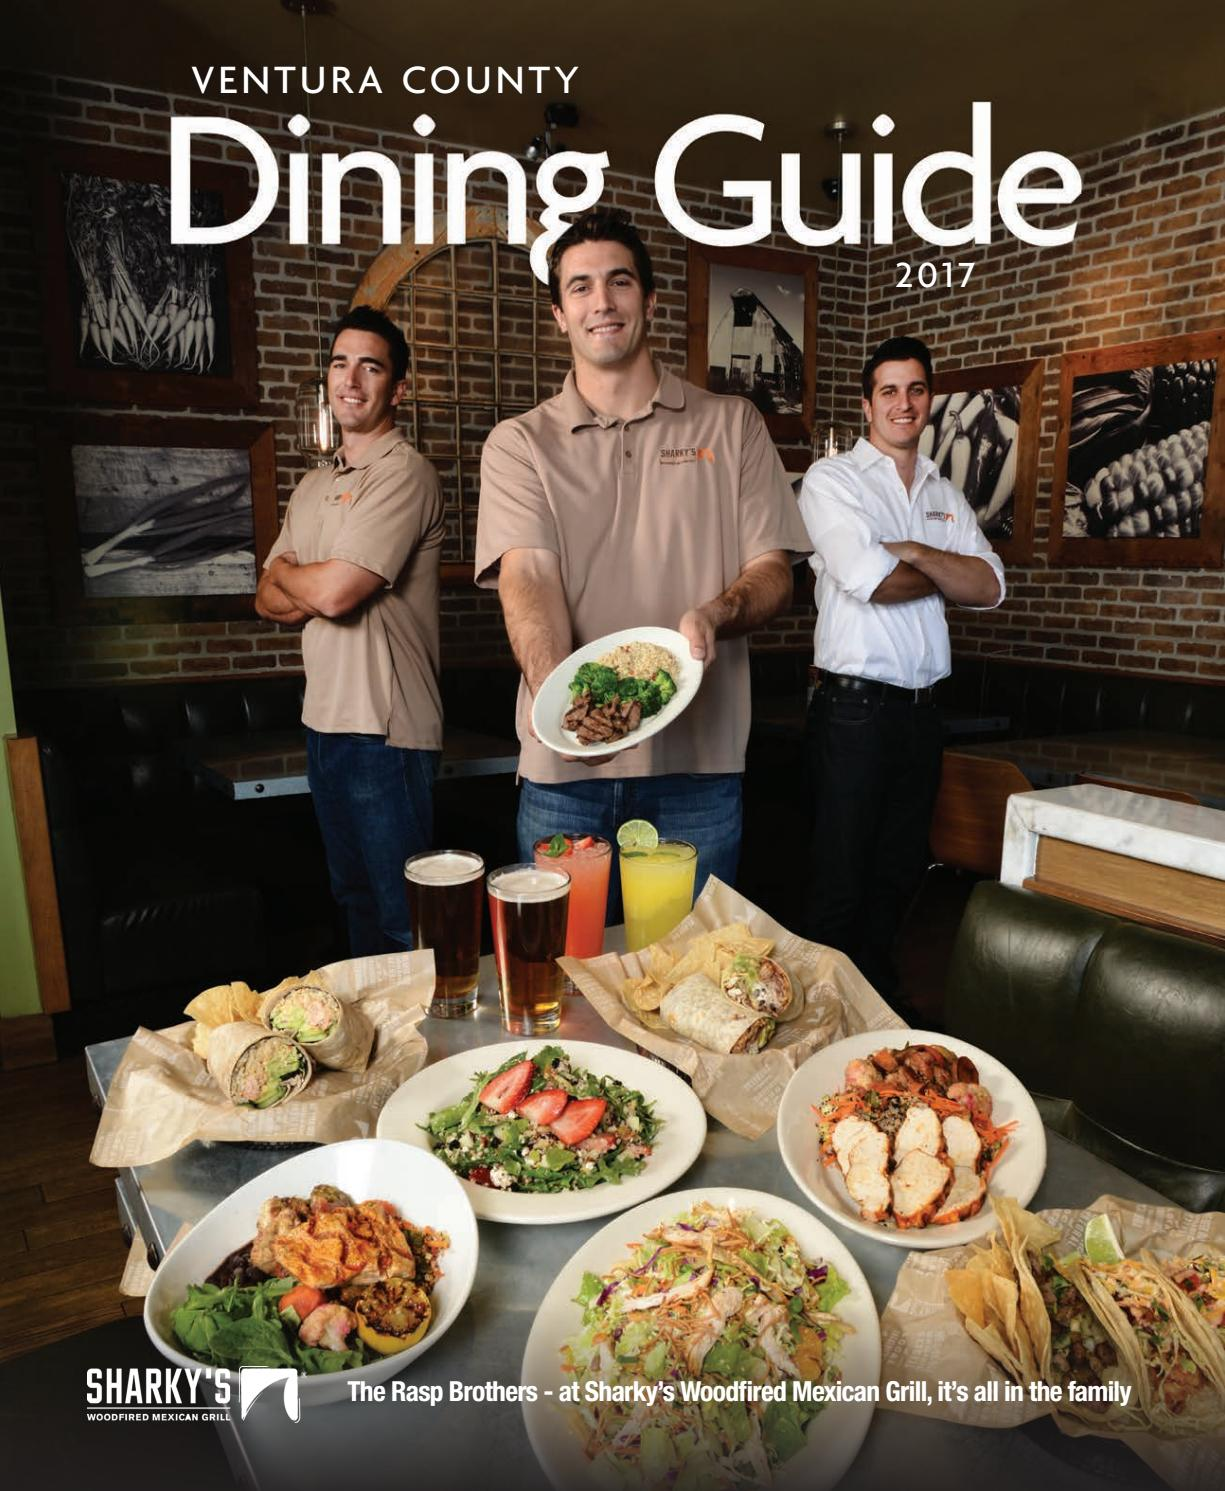 Ventura county dining guide 2017